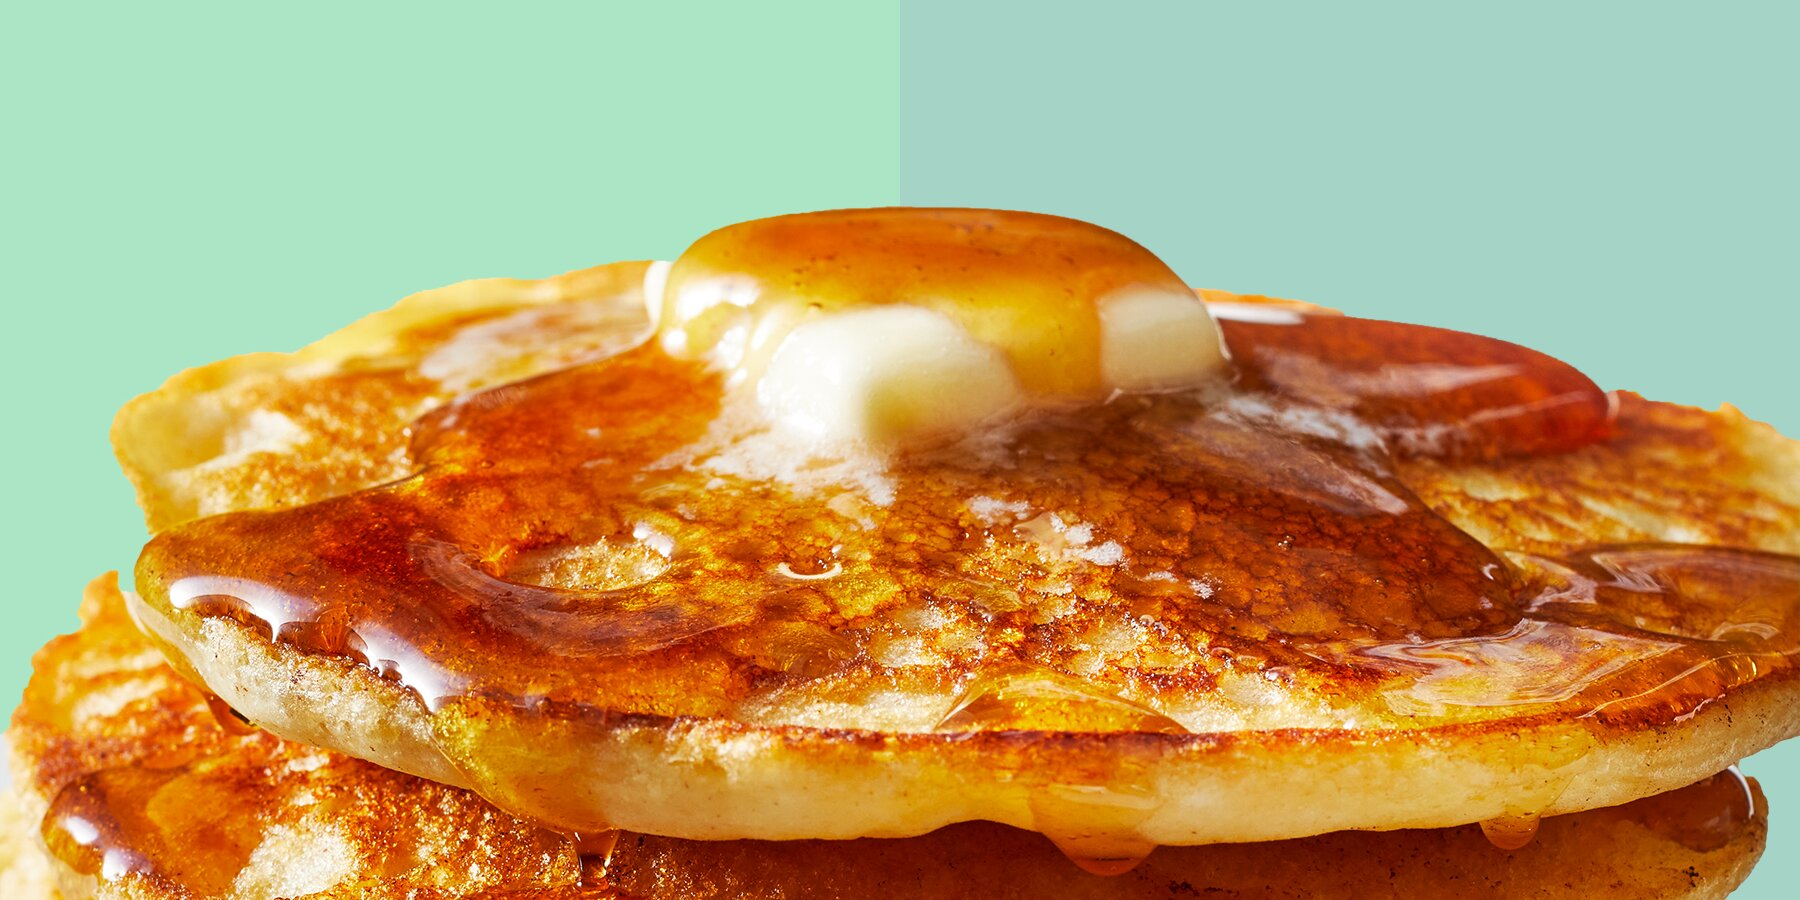 We Tried 35 Pancake Mixes—These Are the 5 Best